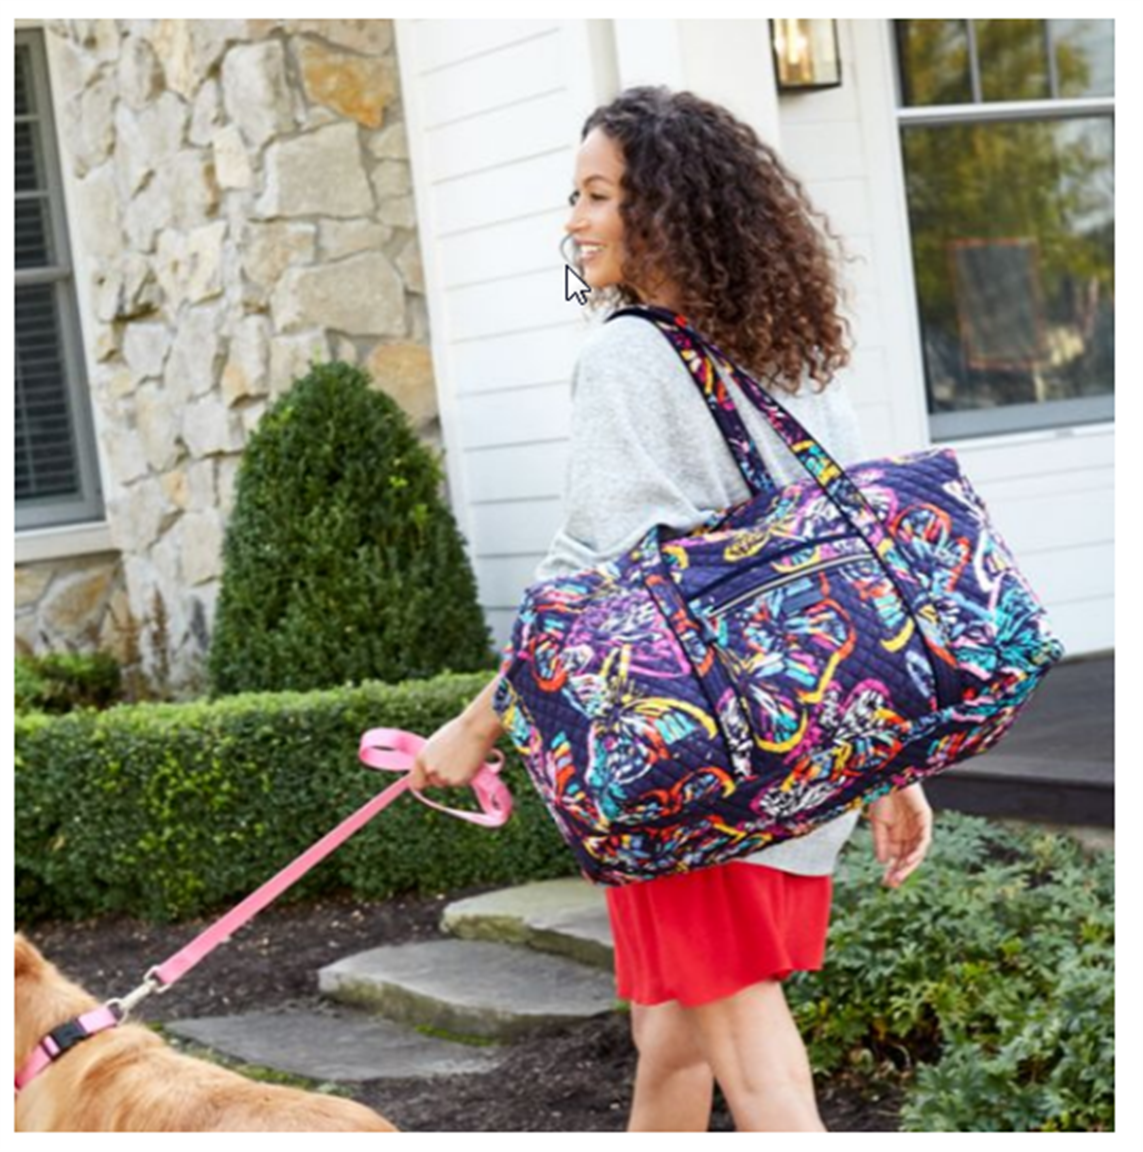 Vera Bradley Outlet Up To 90% Off with Additional 40% off Sale Items + Free Shipping Sitewide!